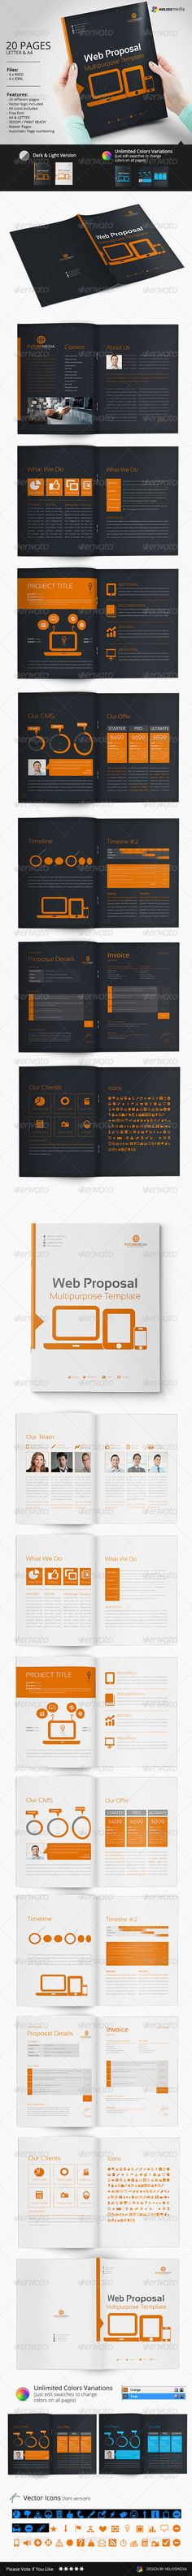 Tosco - Modern Website Proposal Website proposal, Modern website - website proposal template